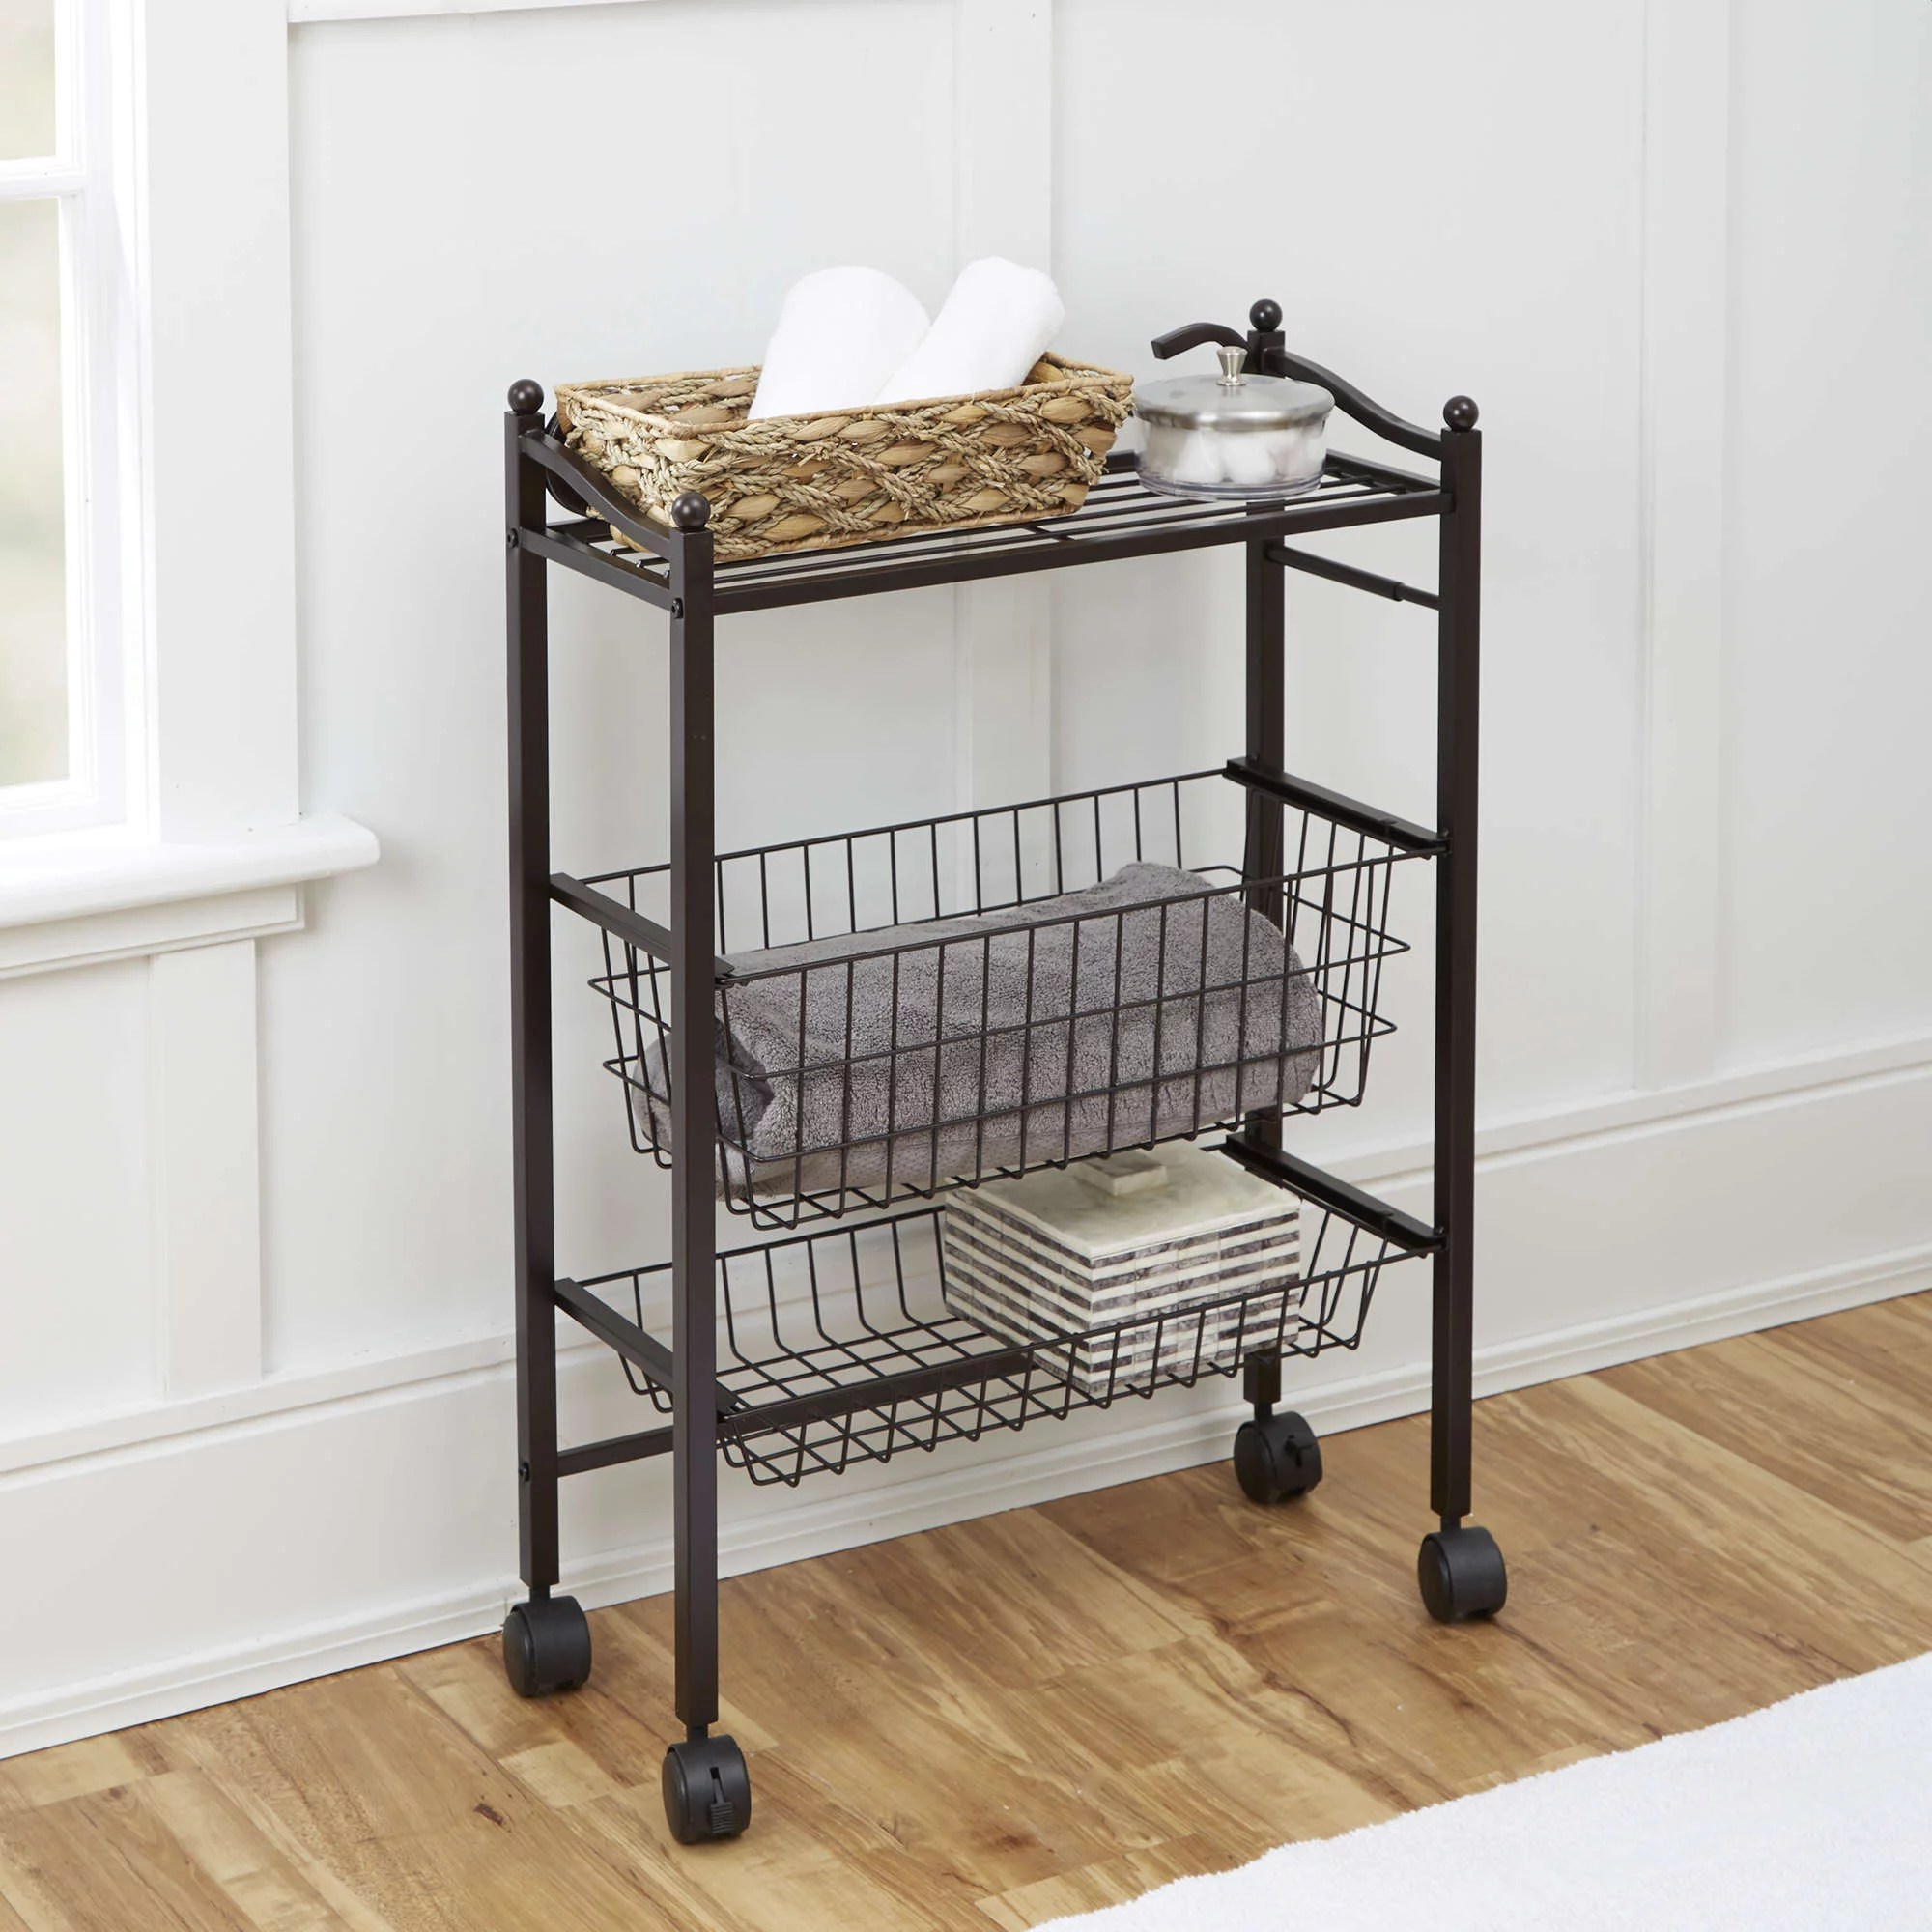 Chapter Bathroom Storage Cart with Top Shelf and Two